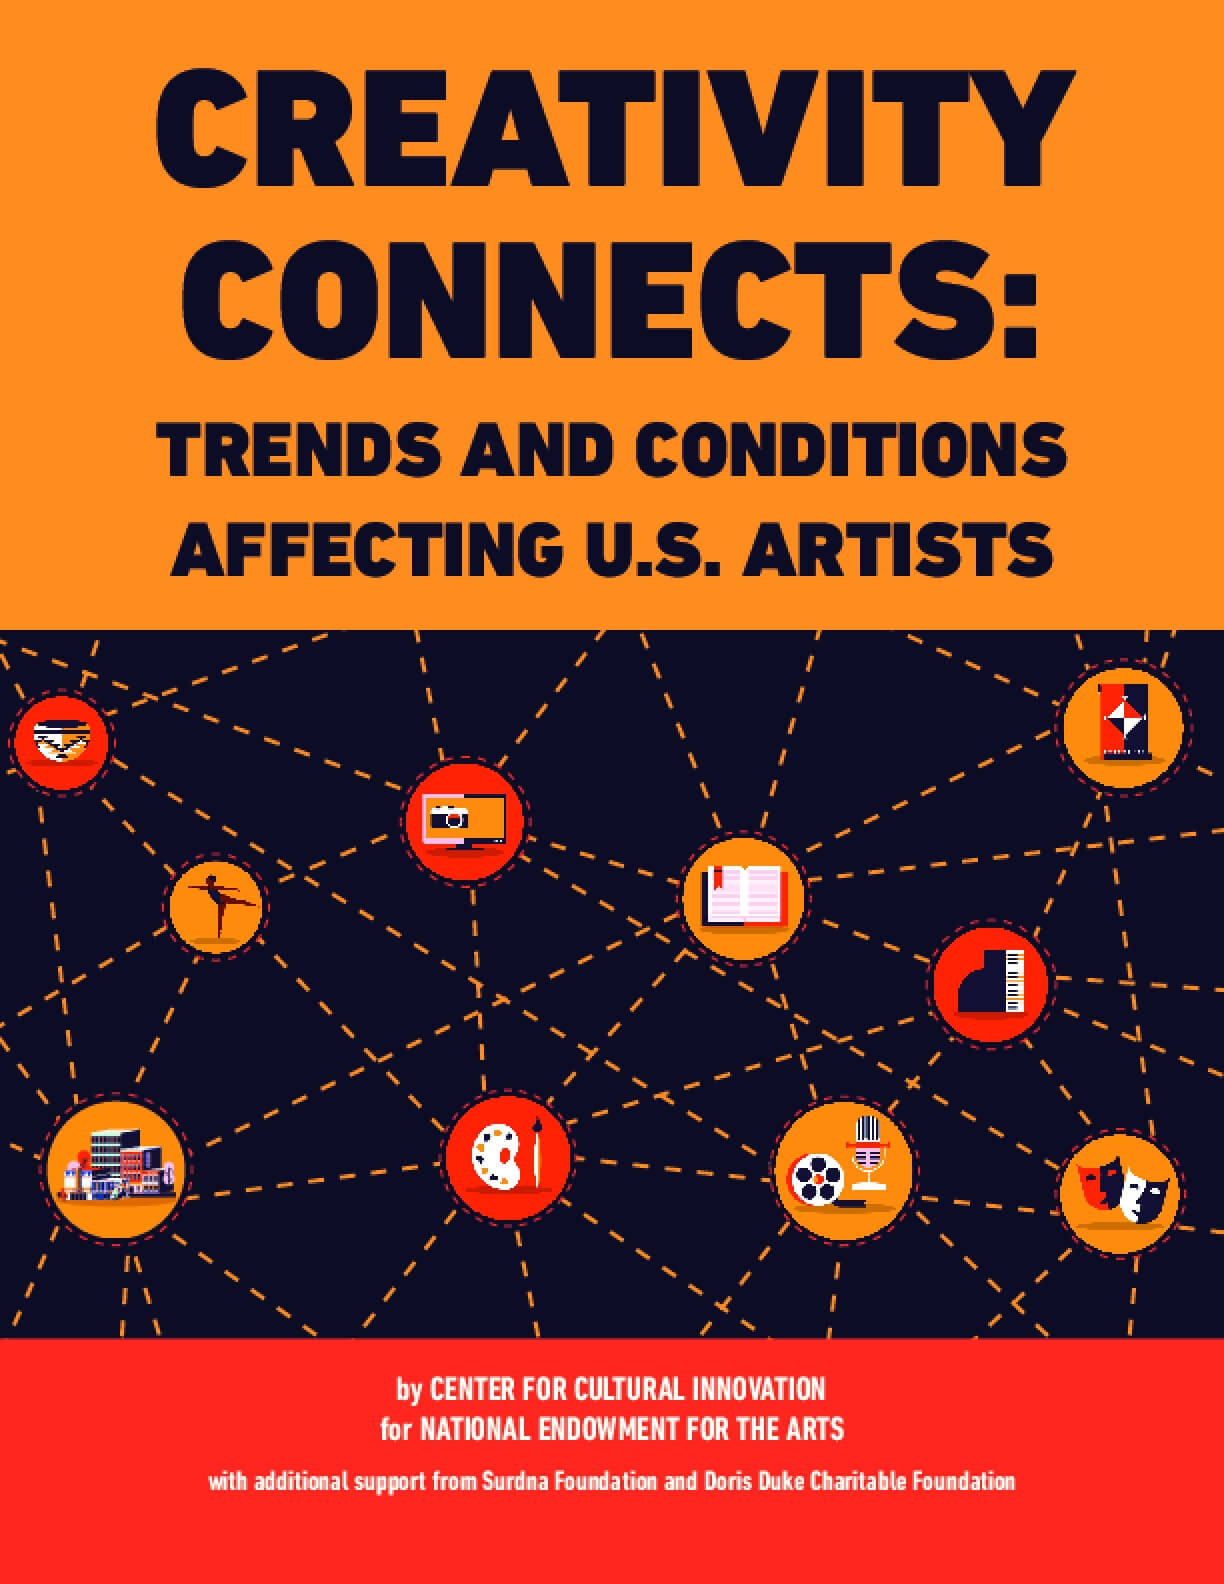 Creativity Connects: Trends and Conditions Affecting U.S. Artists